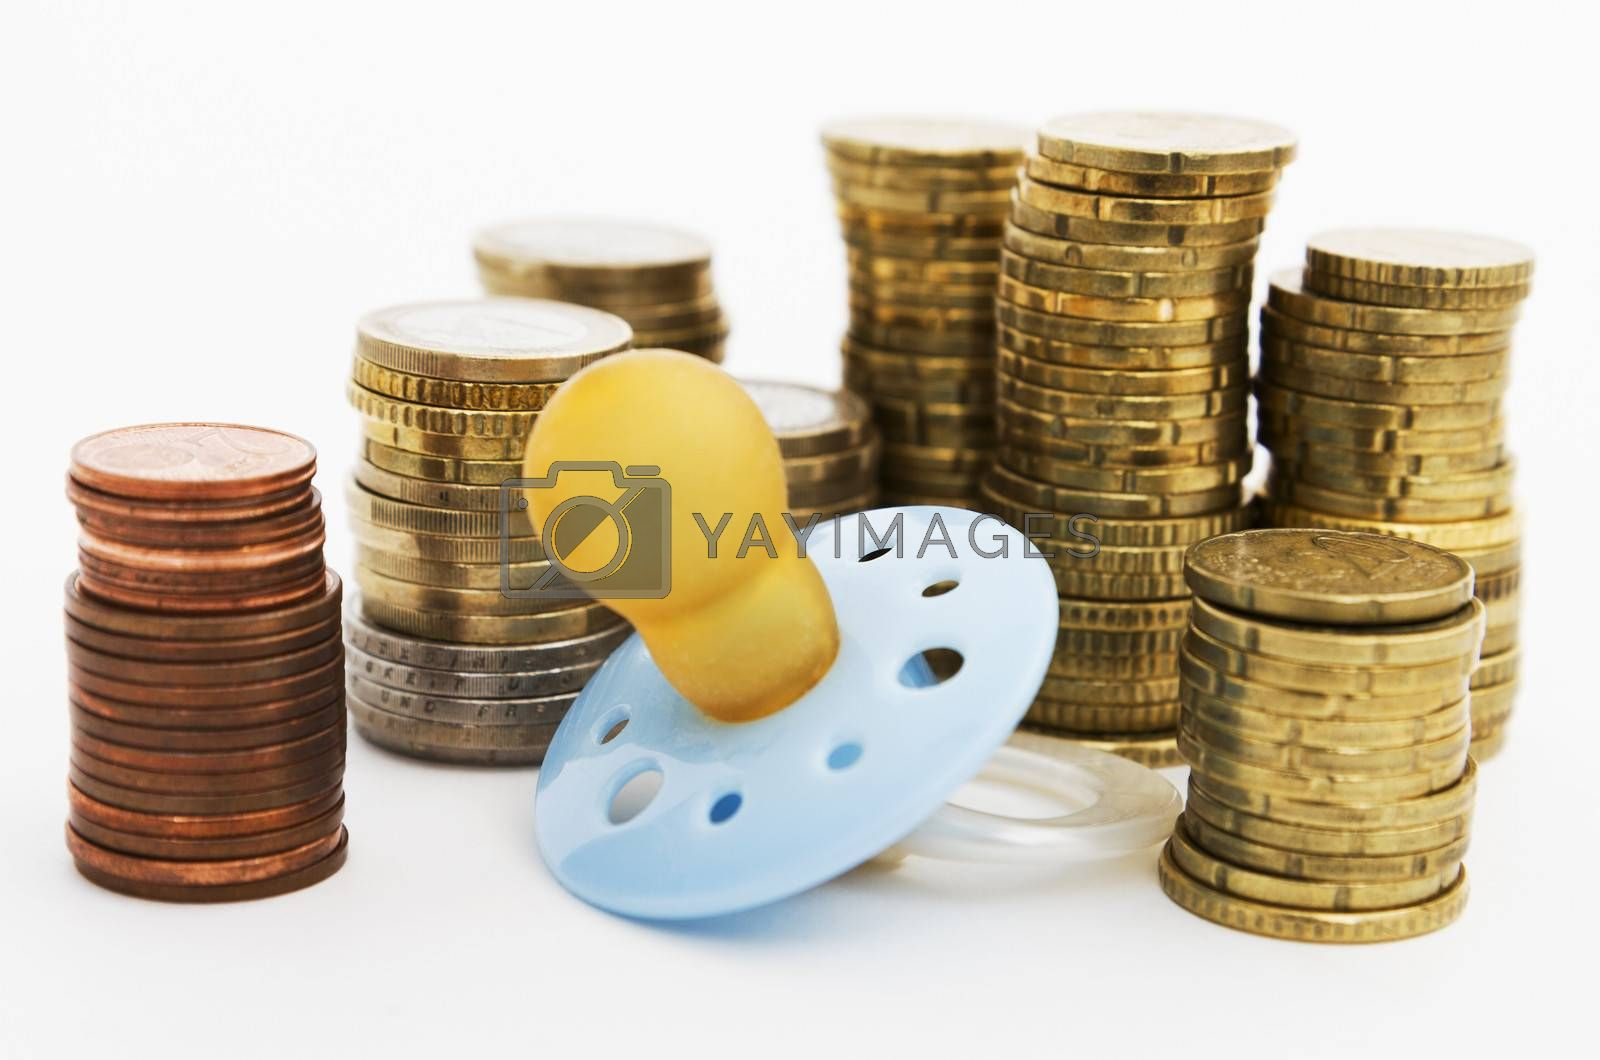 pacifier with hard money in background as symbol for the cost of parenthood